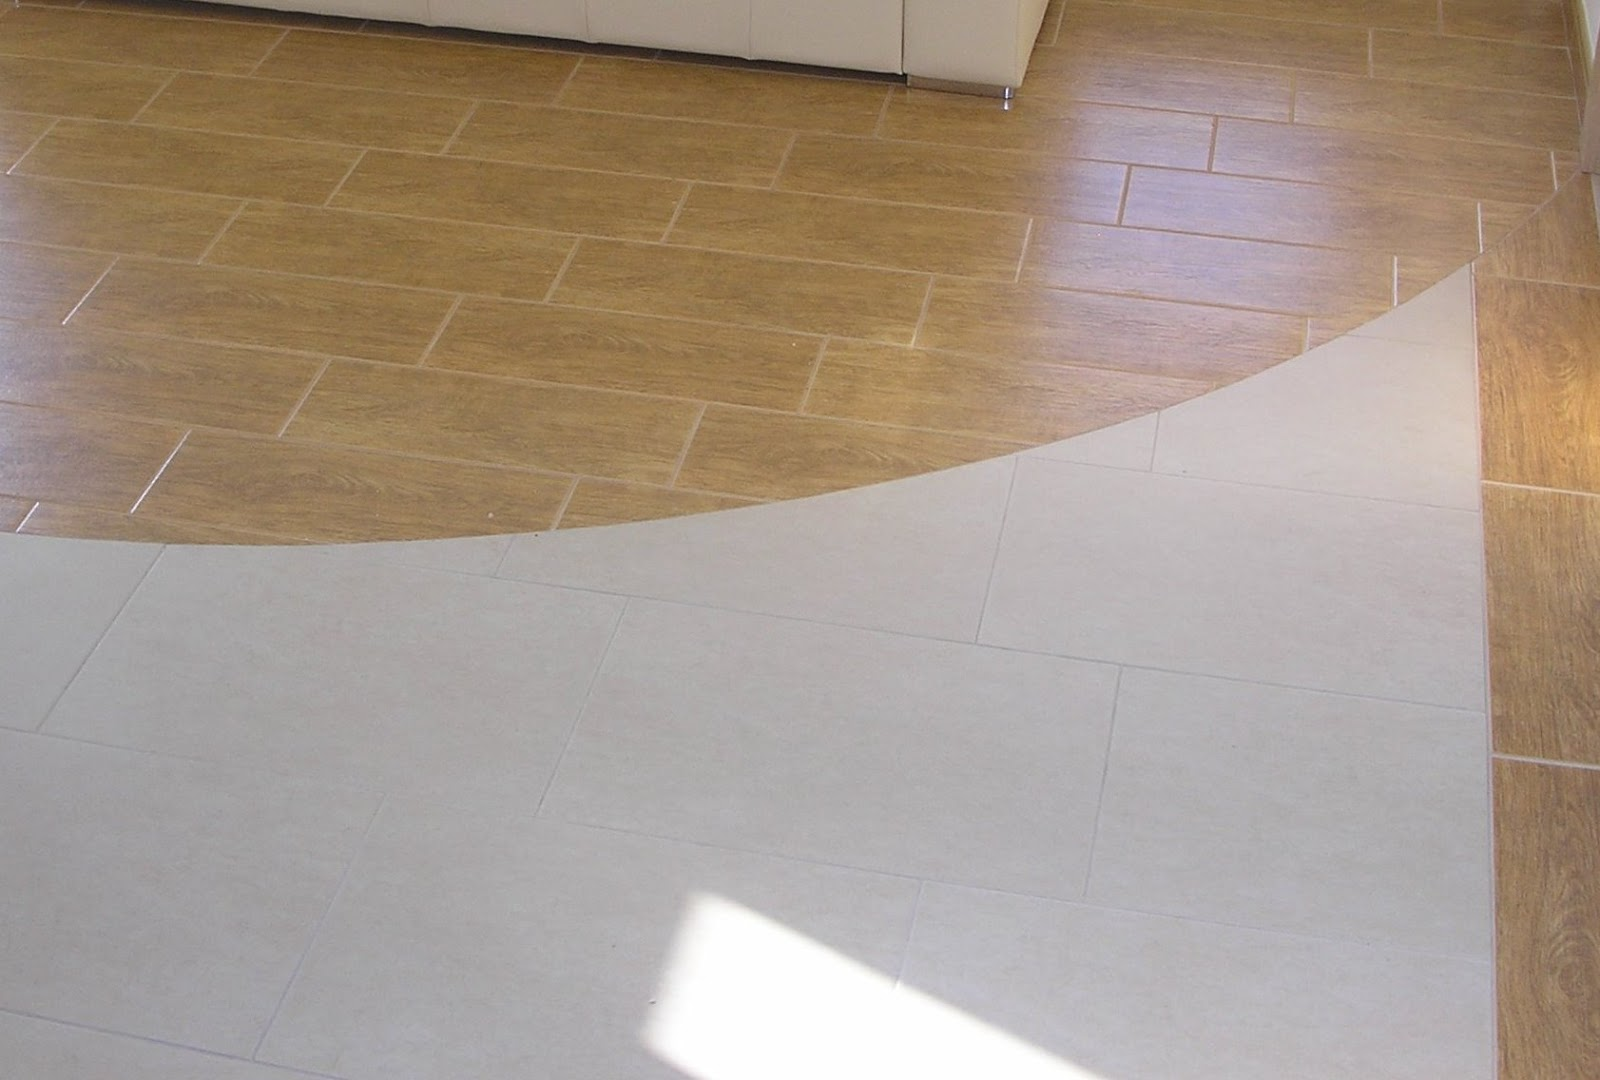 Ceramic tile flooring pros and cons borja ceramic tiles design ceramic tile flooring pros and cons borja ceramic tiles design laminate flooring floating wood tile or dailygadgetfo Images